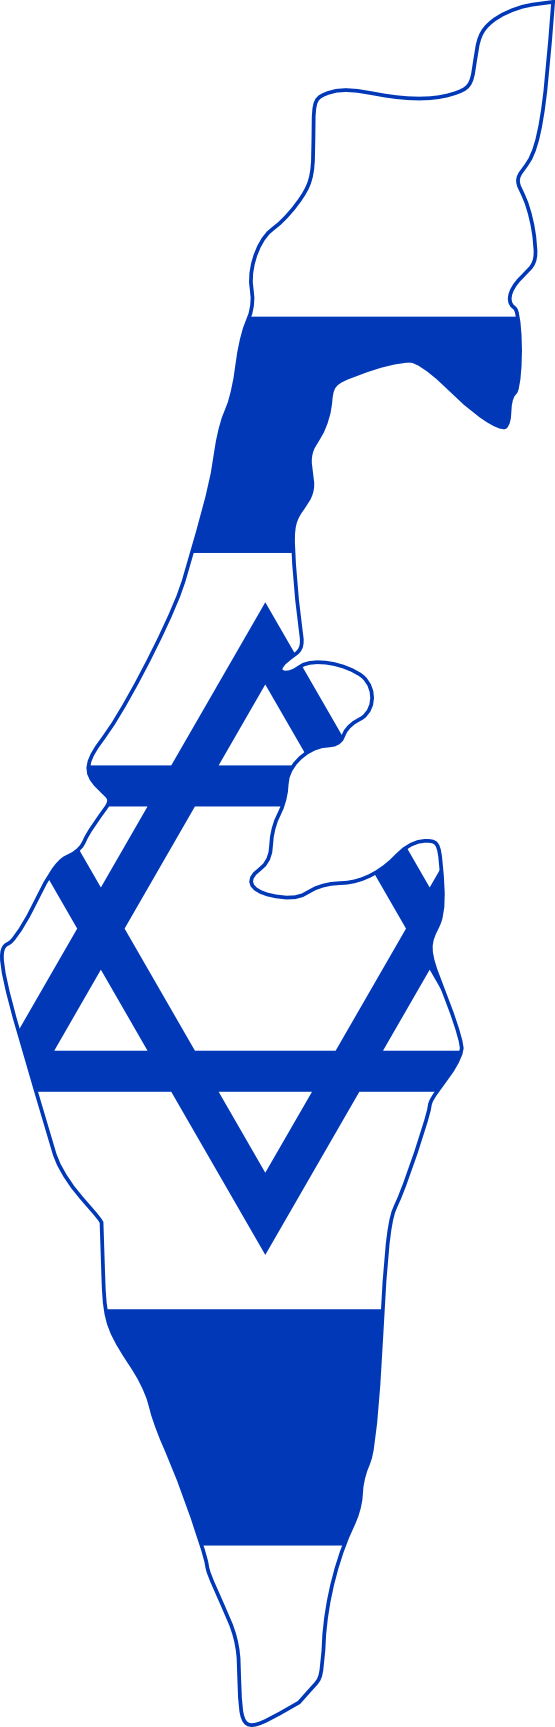 1000+ images about ISRAEL: Banners and clipart on Pinterest.